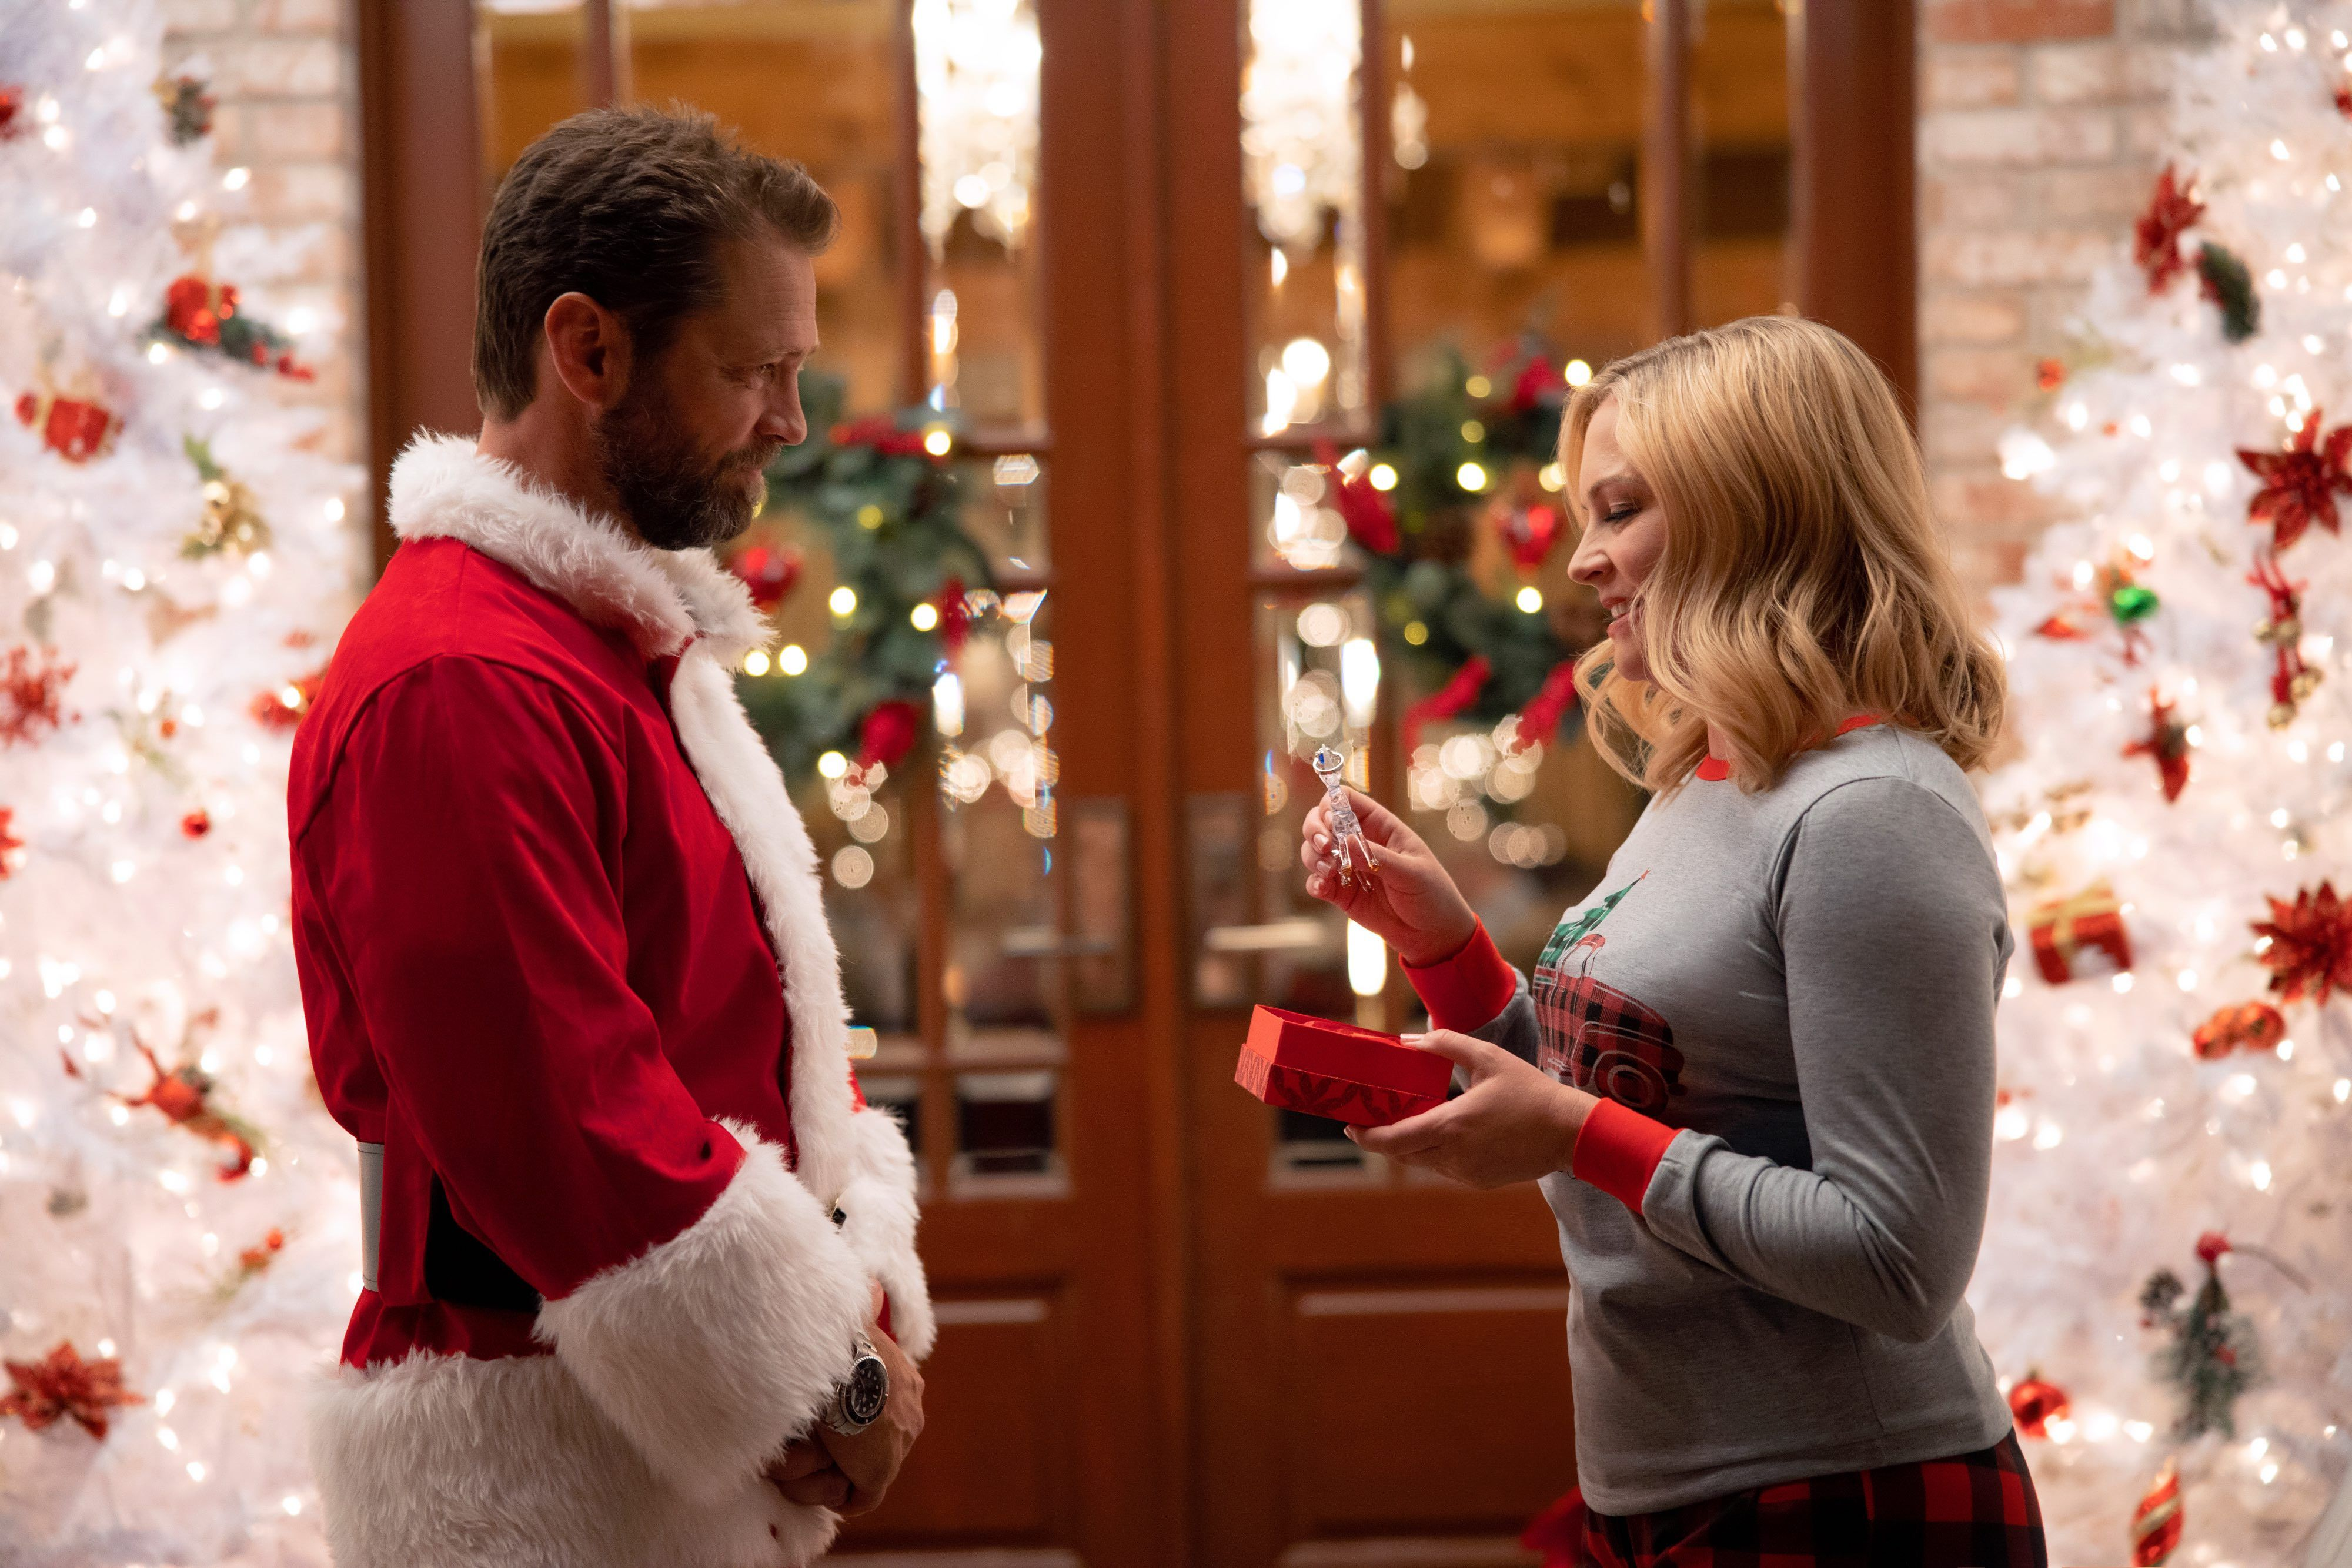 New Christmas Music Releases 2020 Lifetime's Christmas and Holiday Movie Schedule 2020